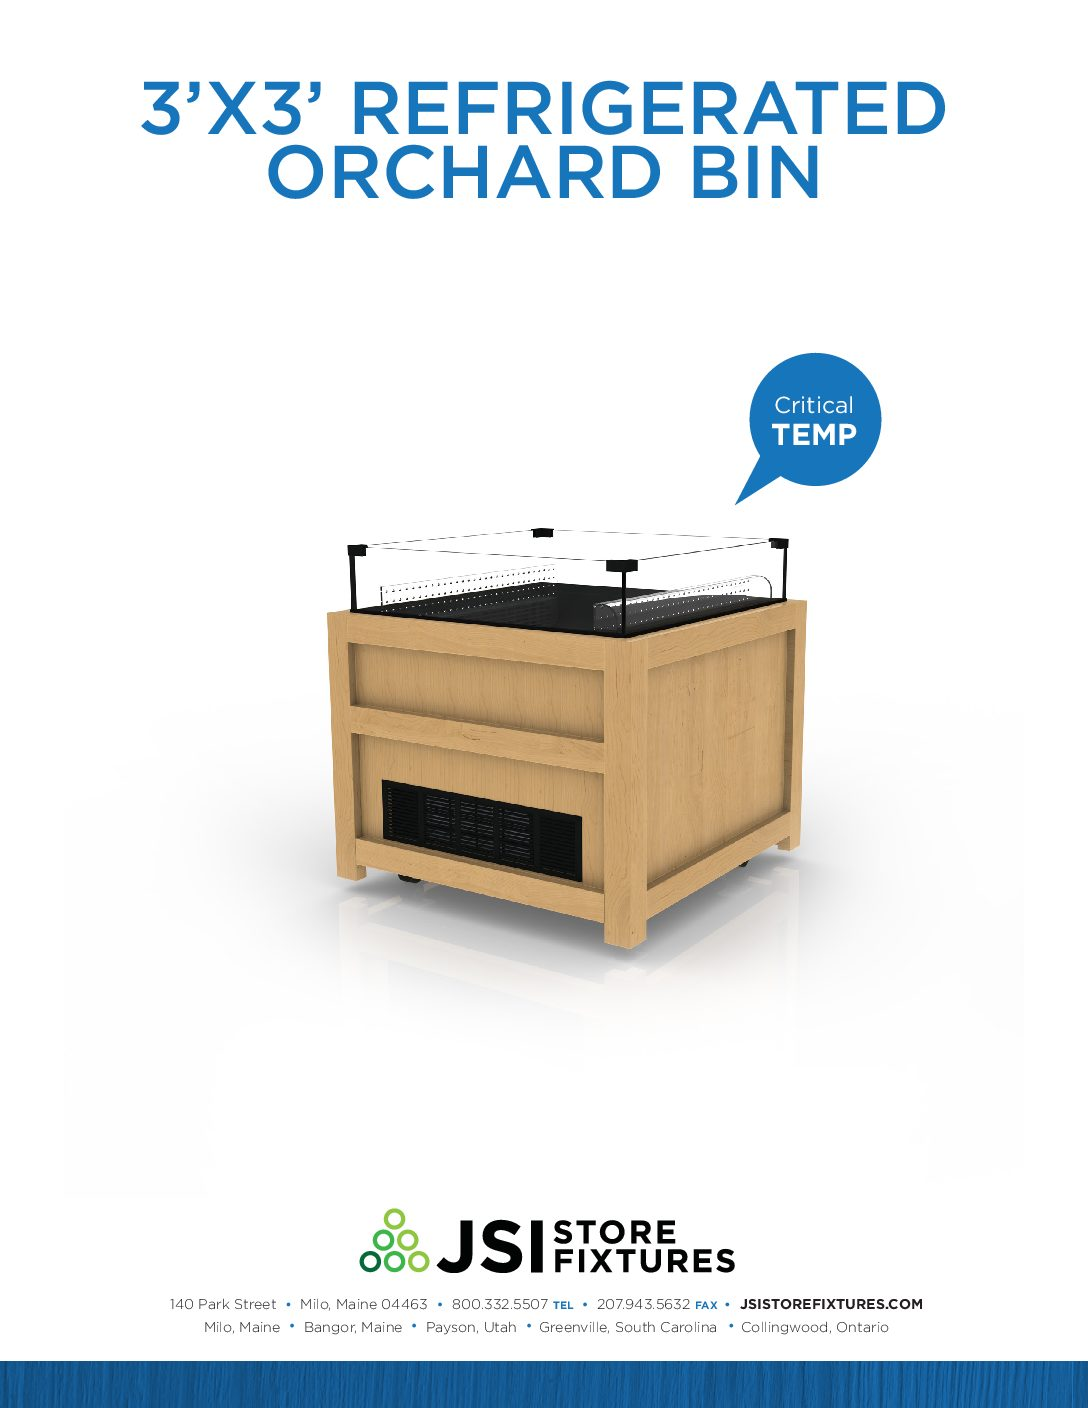 3'x3' Refrigerated Orchard Bin Spec Sheet